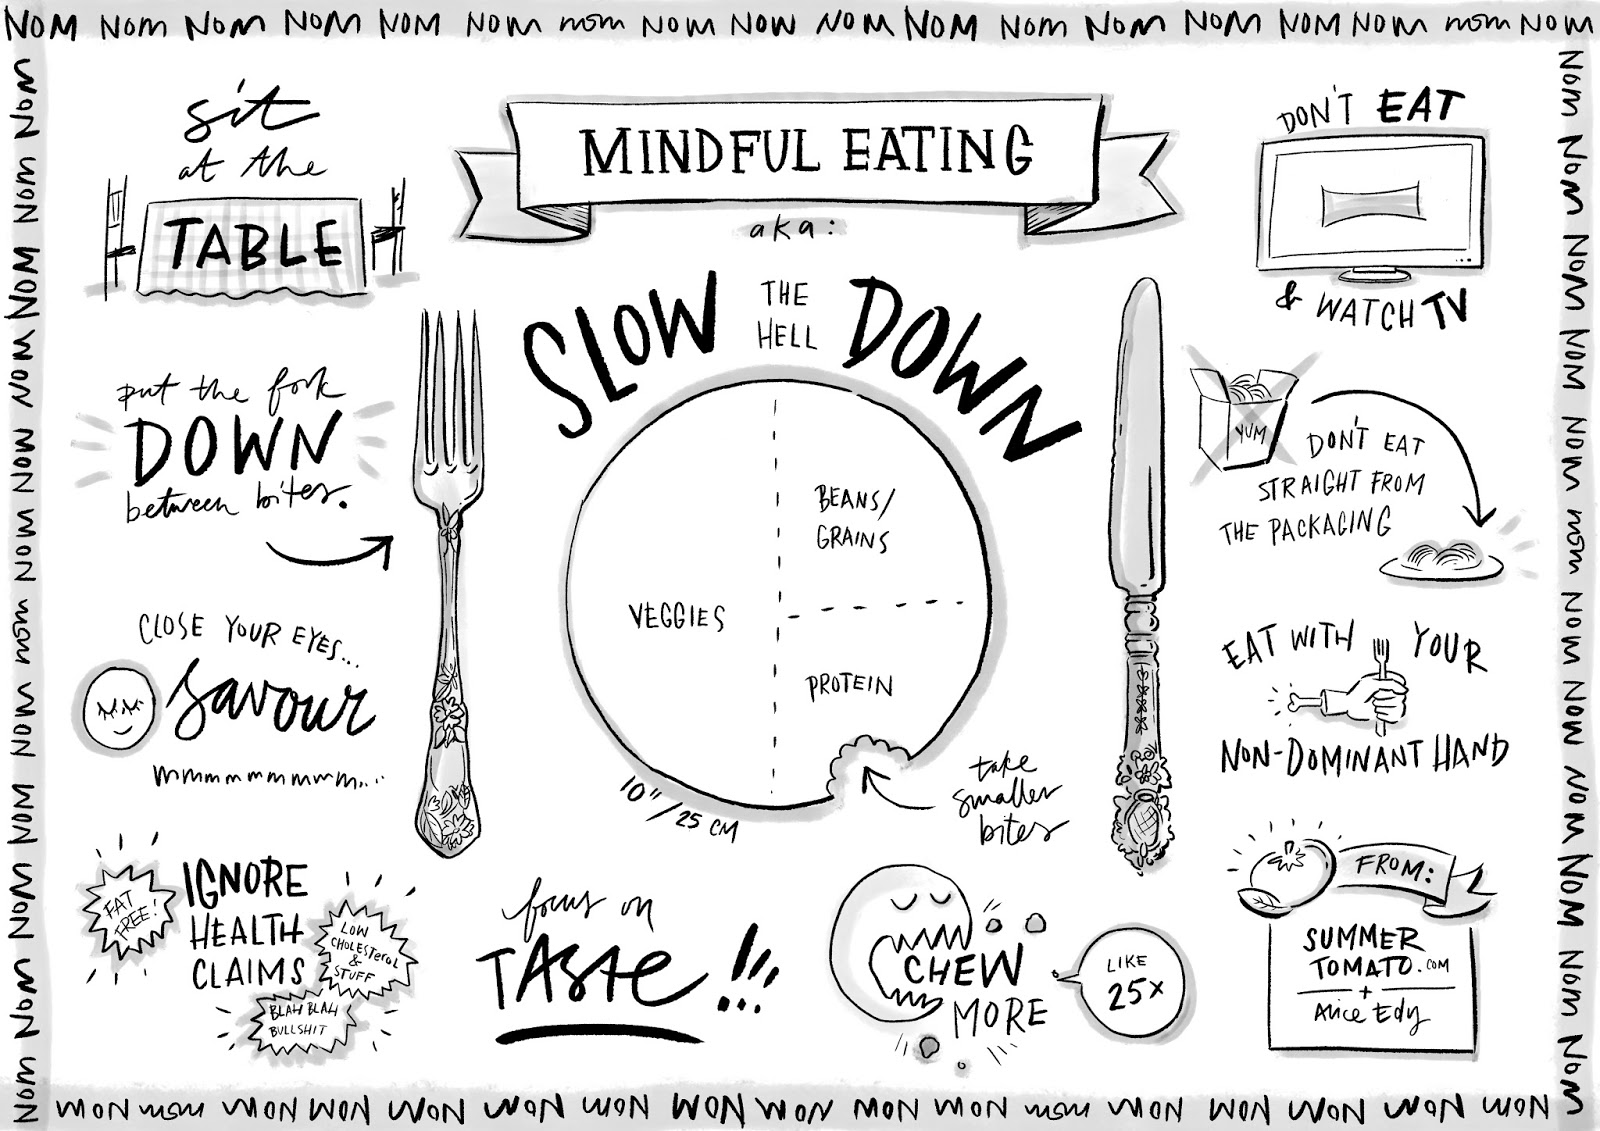 A Placemat For Mindful Eating